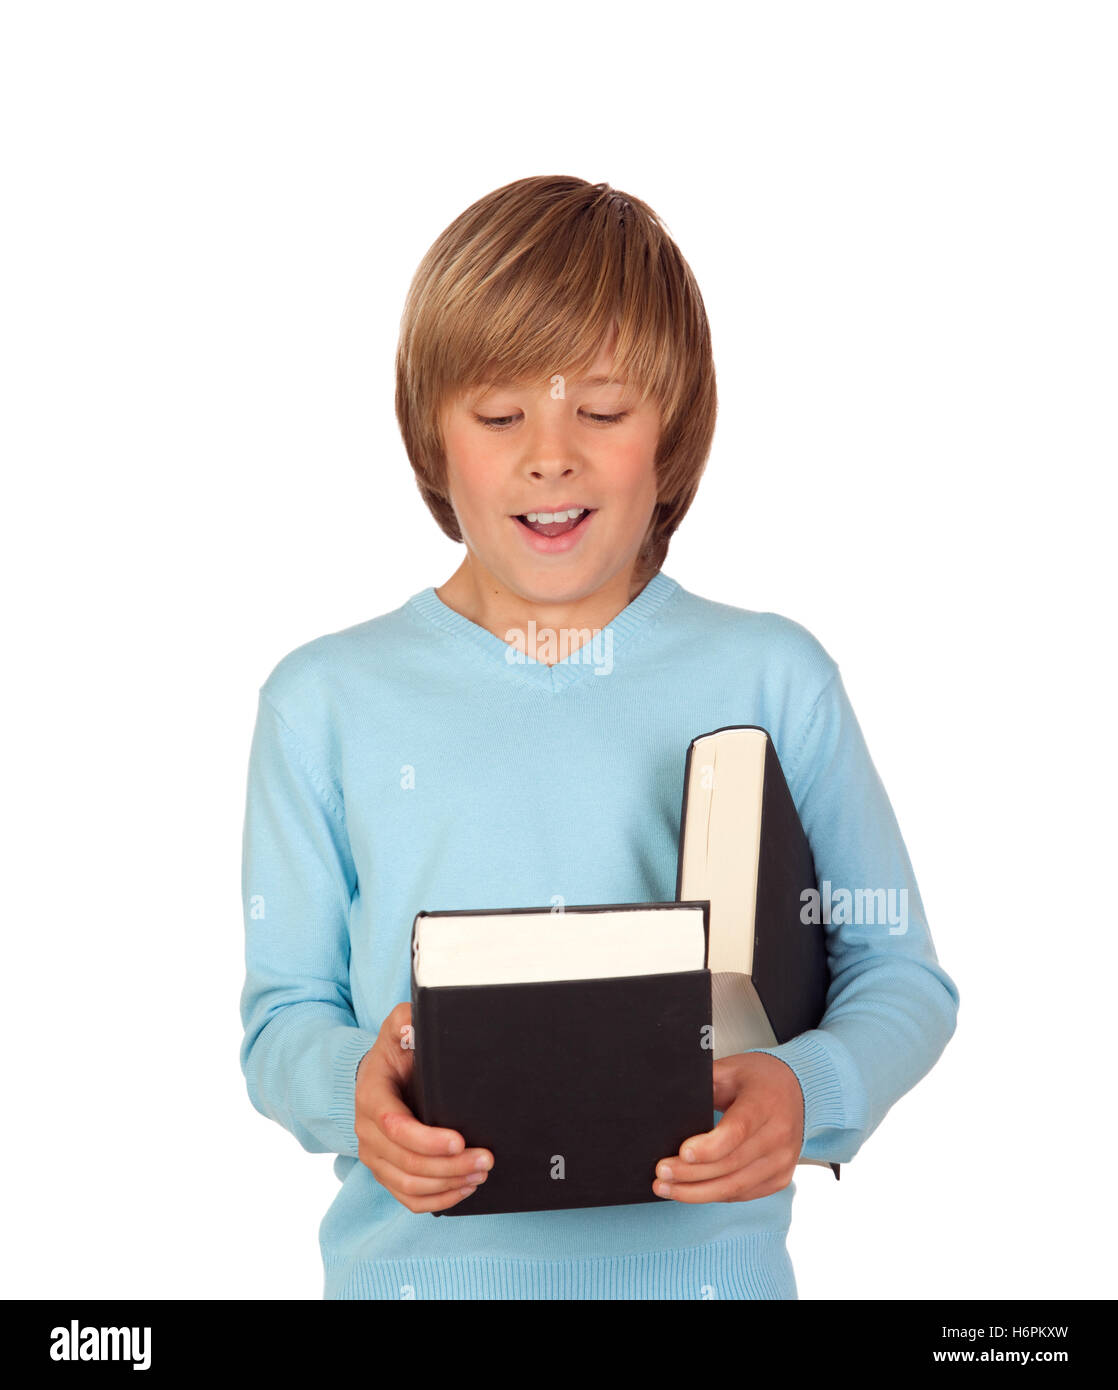 Surprised preteen boy with a book isolated on a white background - Stock Image